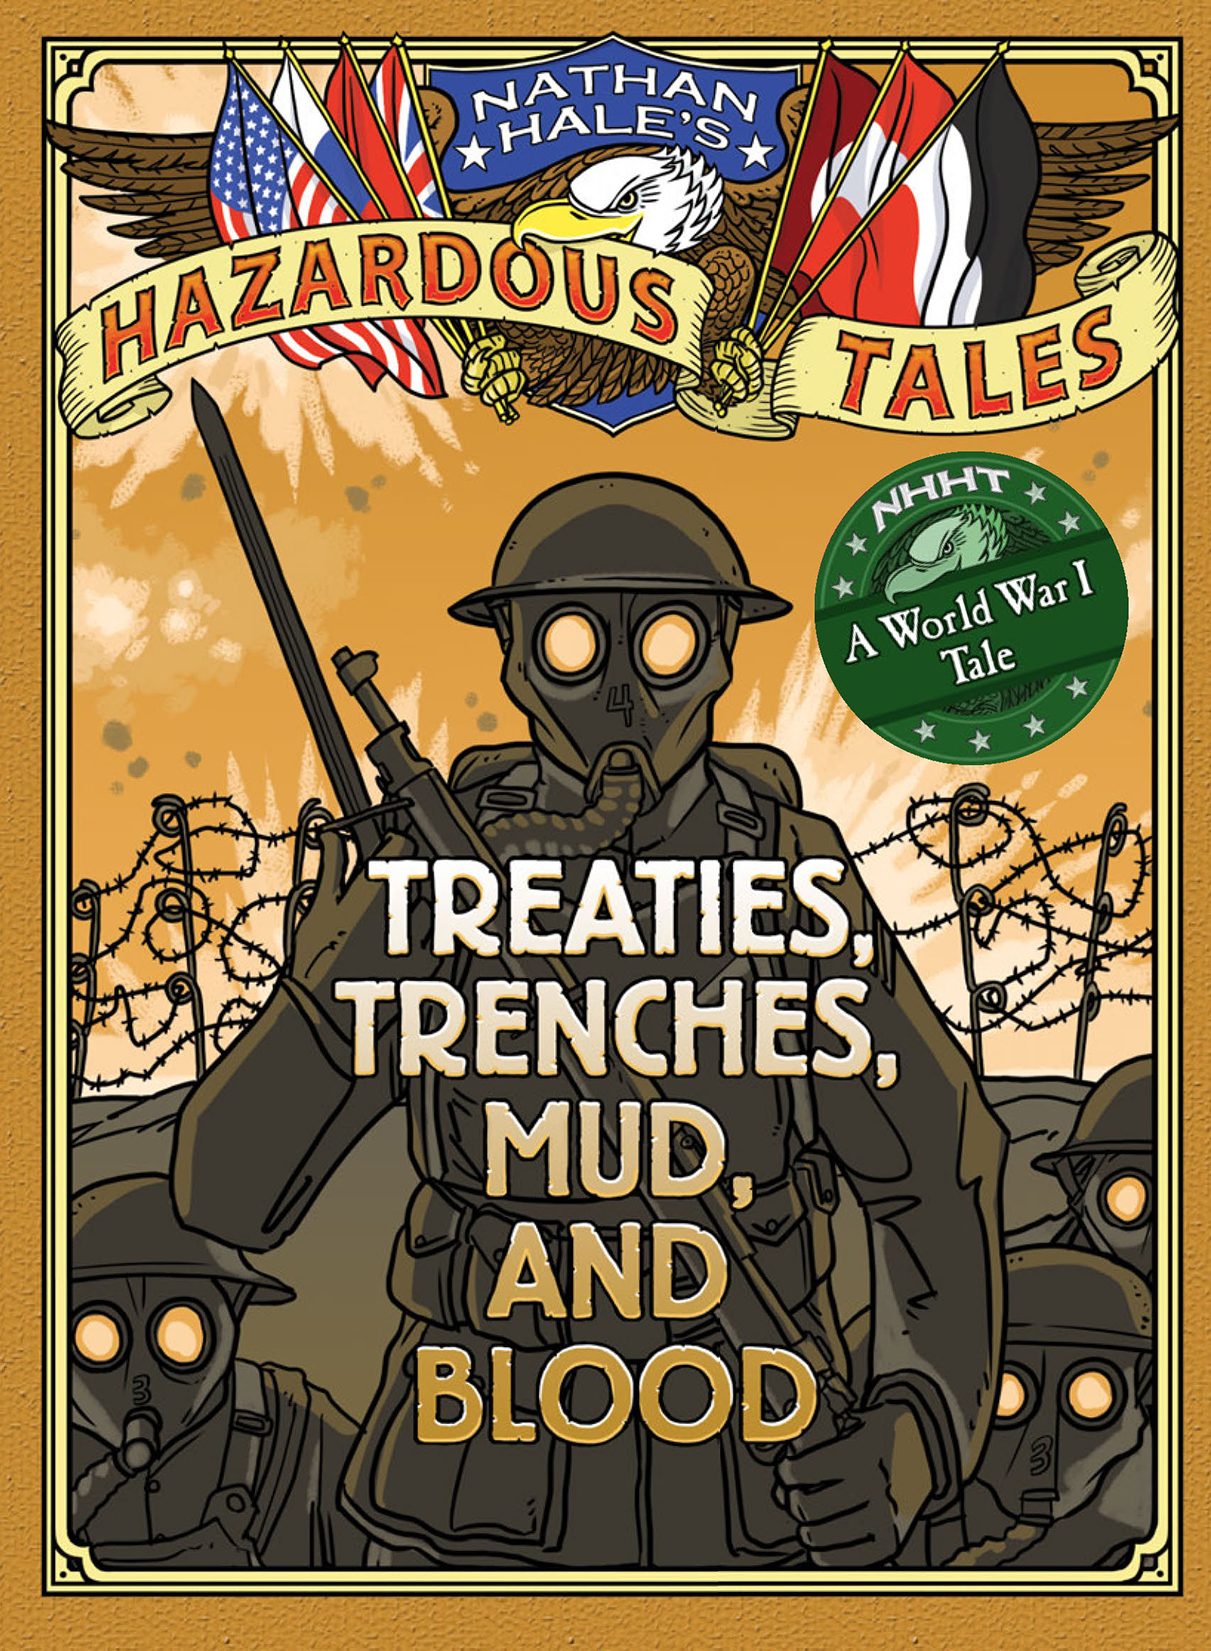 Nathan Hale's Hazardous Tales Treaties,  Trenches,  Mud,  and Blood (A World War I Tale)